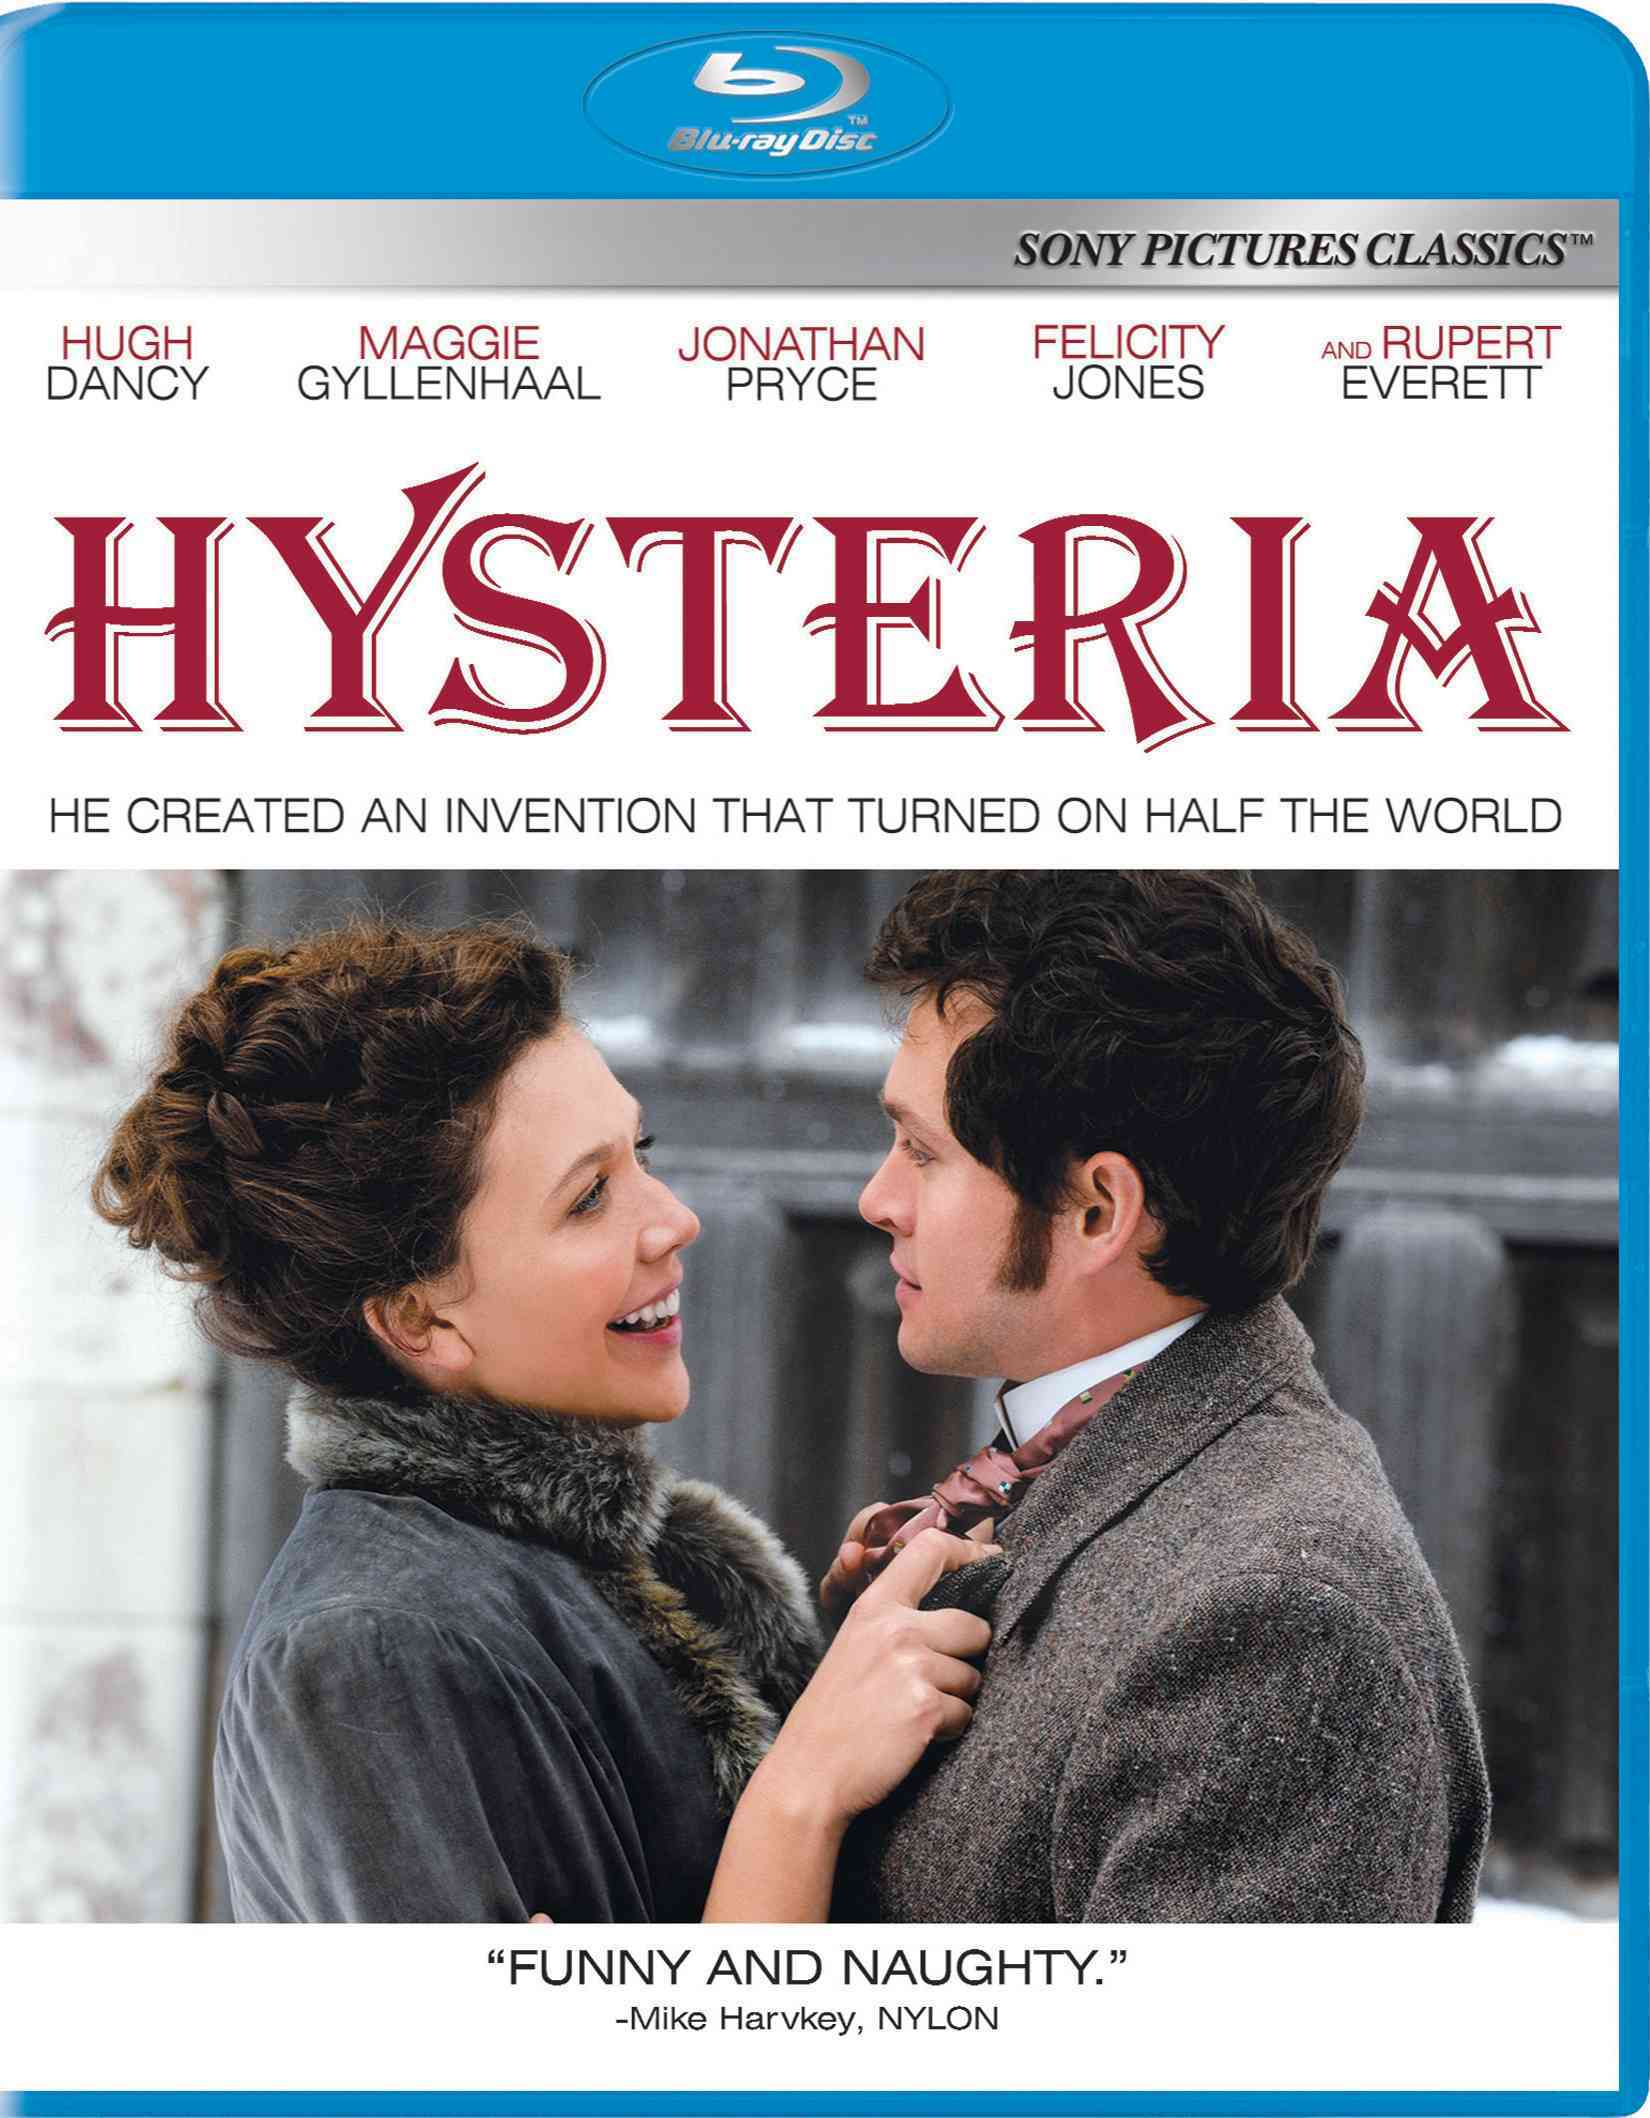 HYSTERIA BY DANCY,HUGH (Blu-Ray)